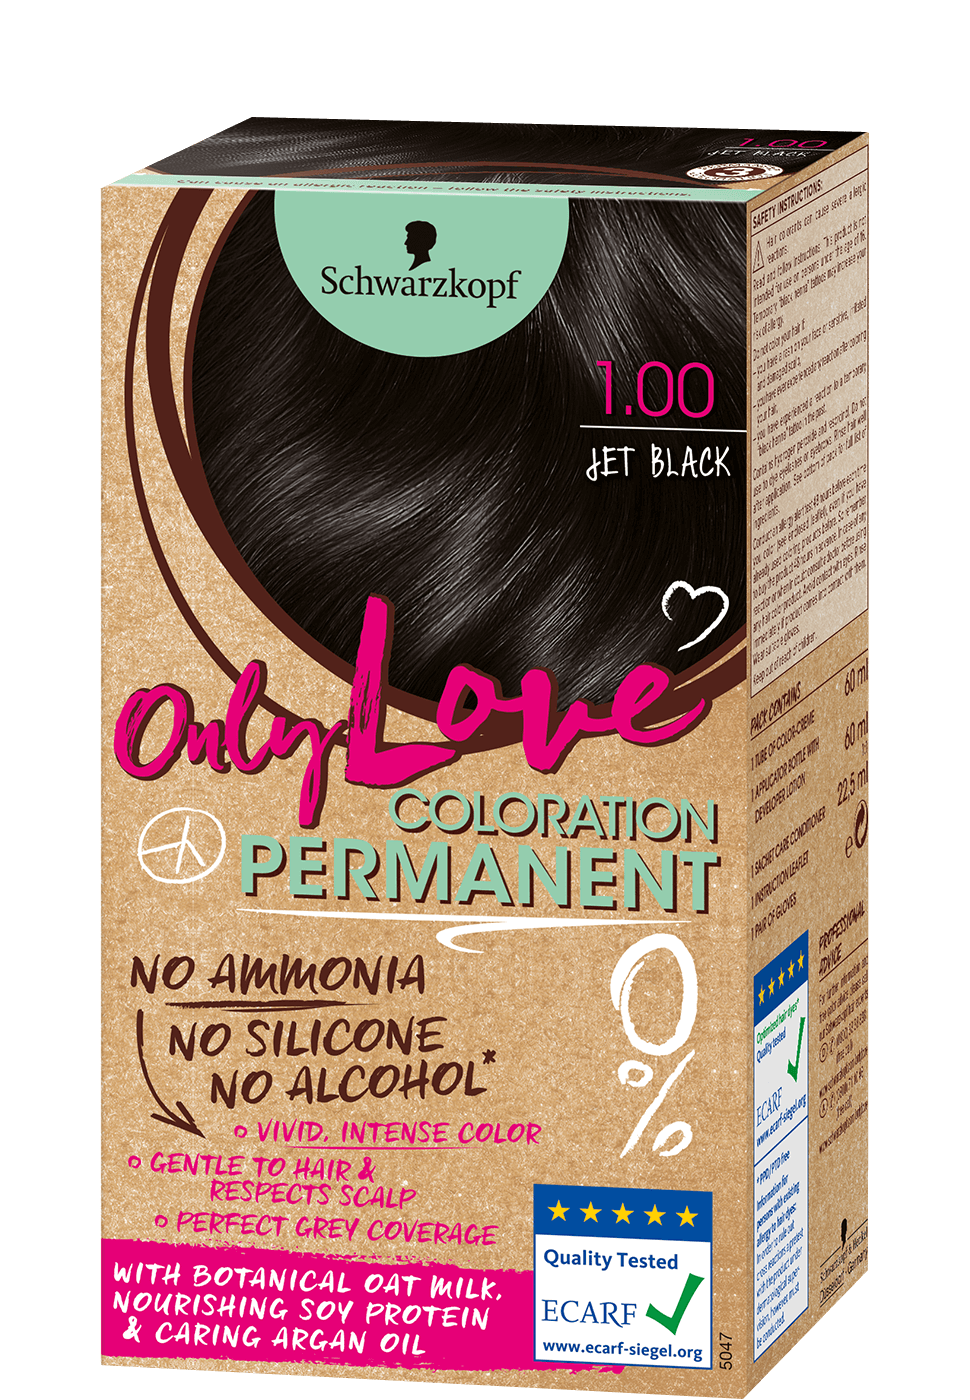 only_love_com_coloration_permanent_1_00_jet_black_970x1400